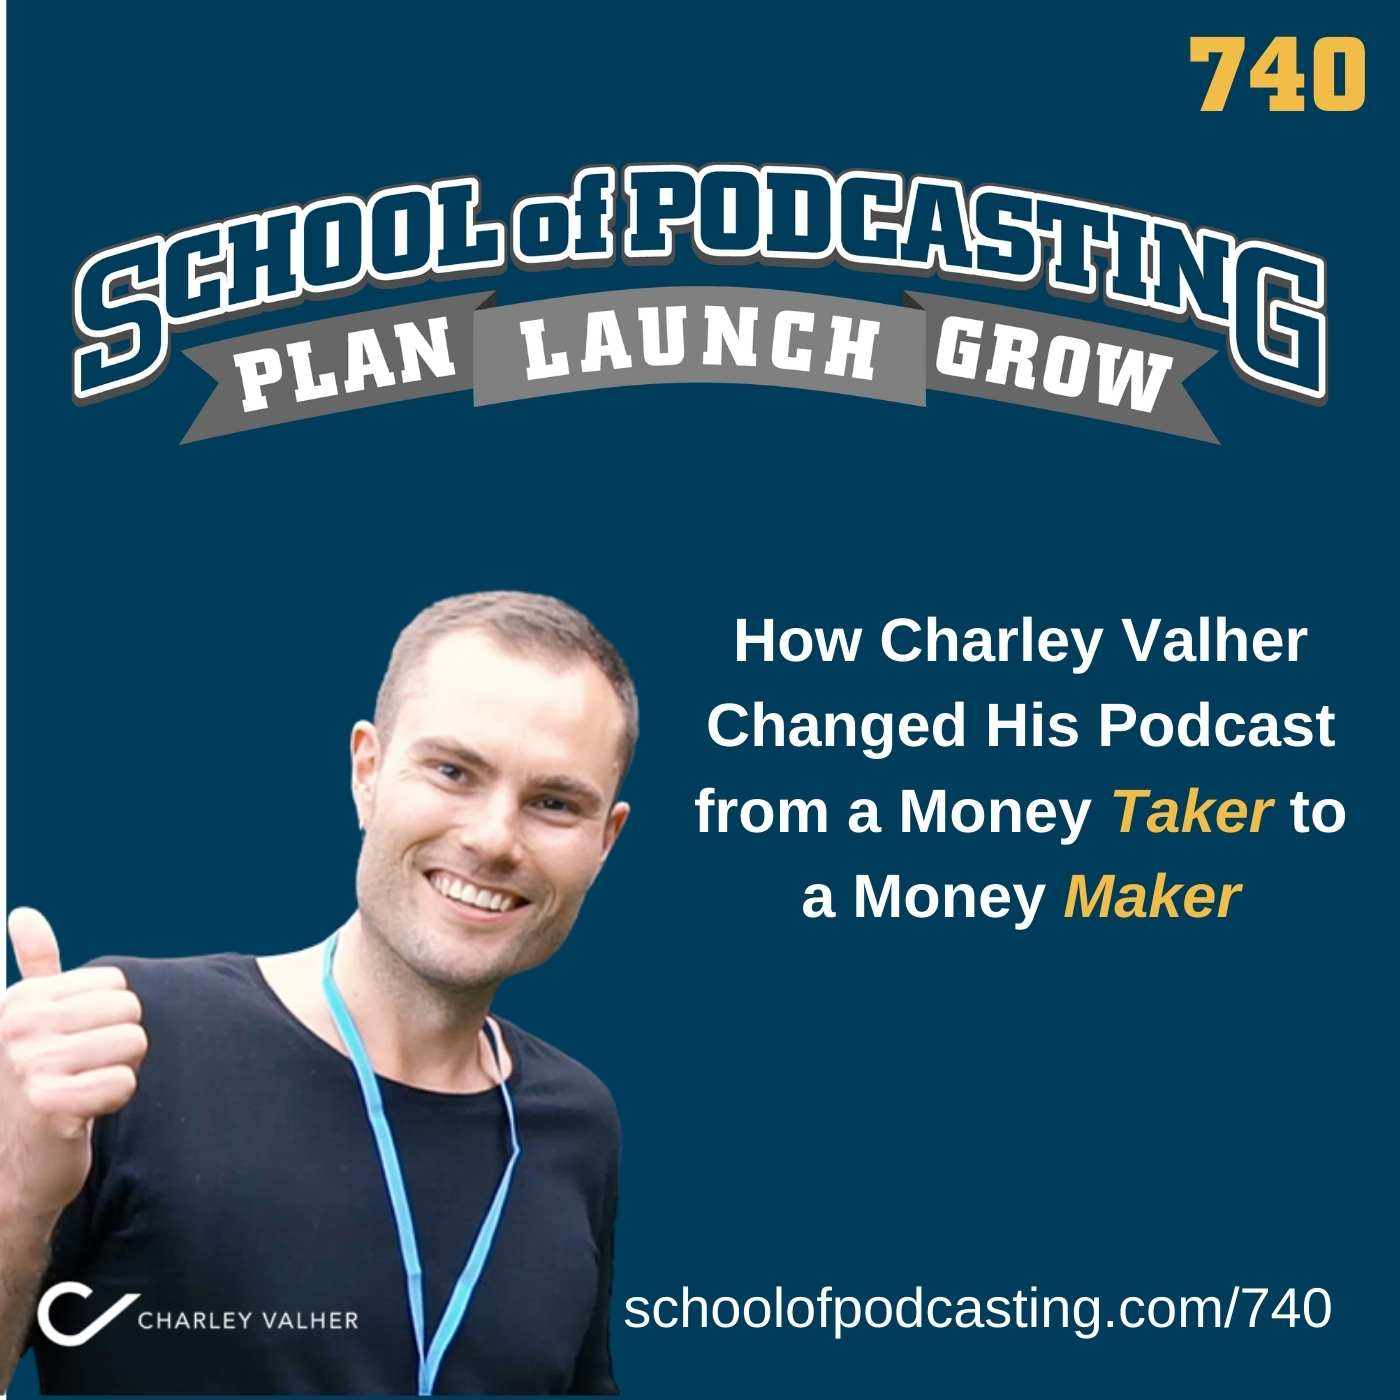 How Charley Valher ChangedHis Podcast from a Money Taker to a Money Maker